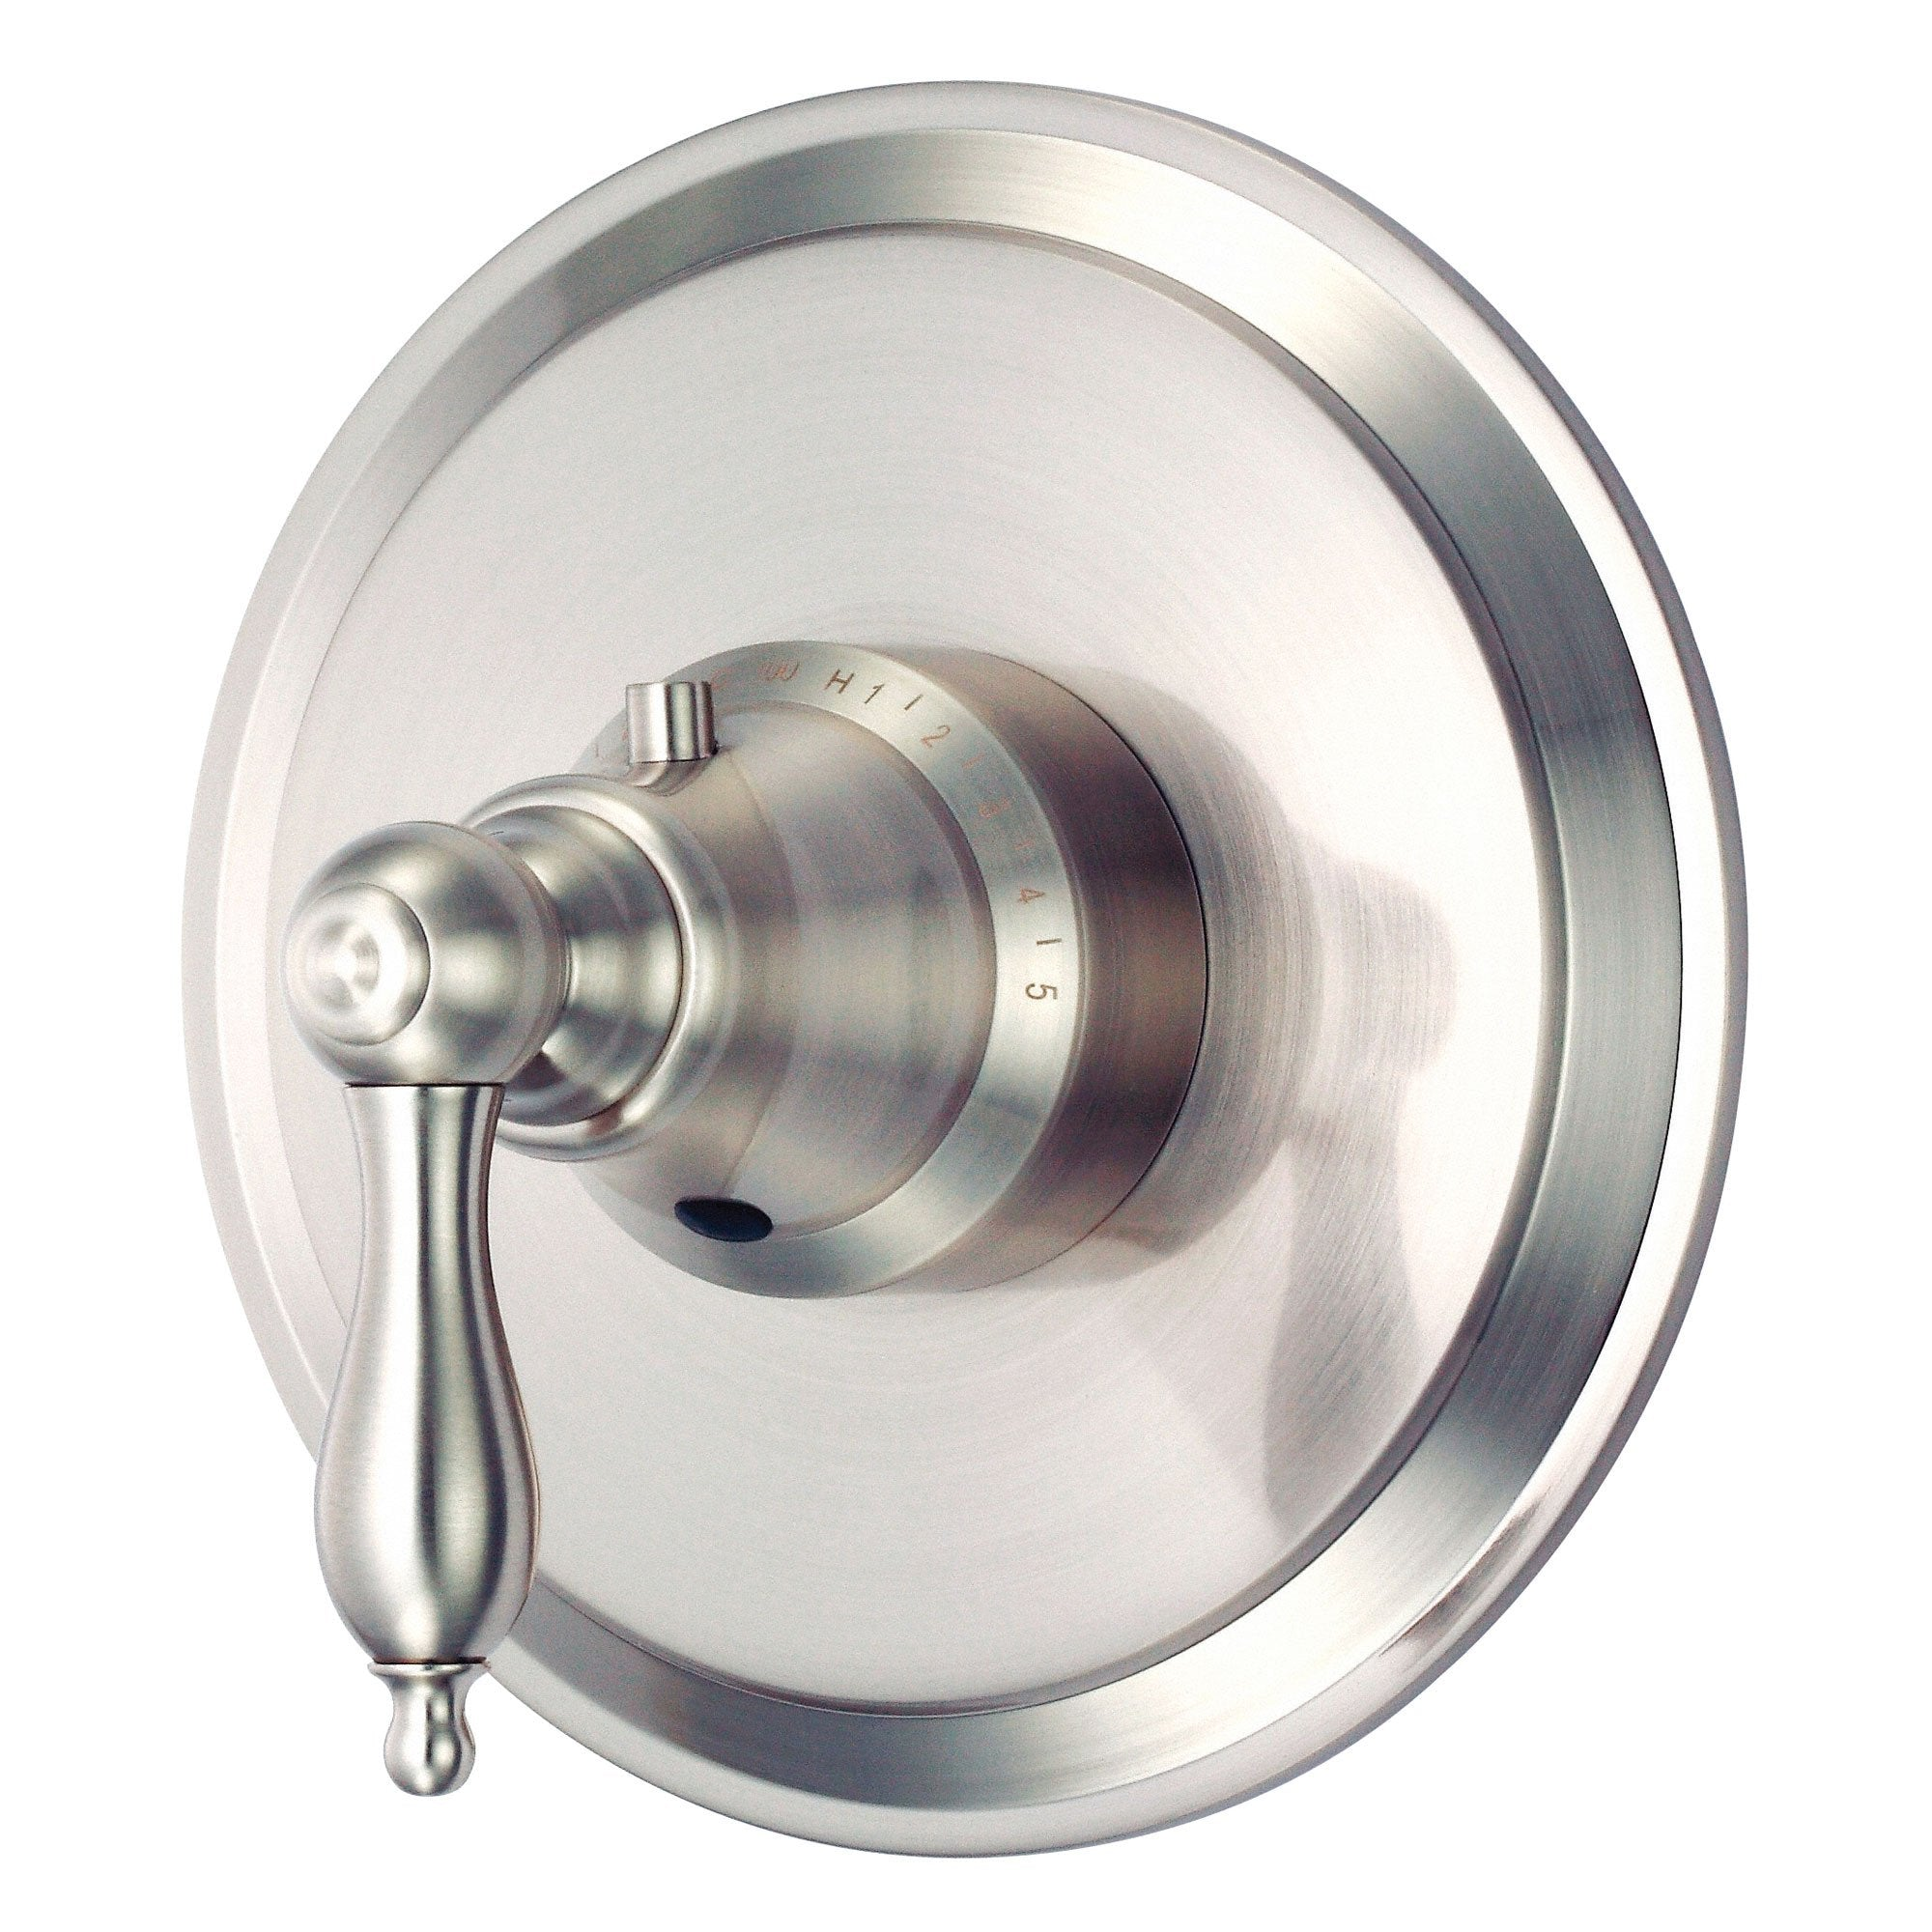 Danze Fairmont Brushed Nickel High-Volume Thermostatic Shower Control INCLUDES Rough-in Valve